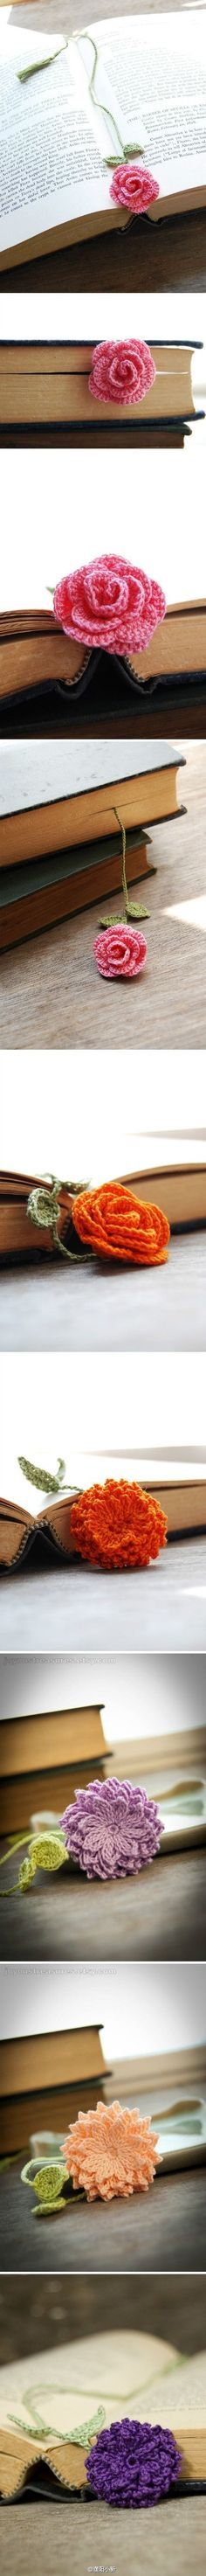 pretty bookmarks - crochet flowers by Underwaterpixie